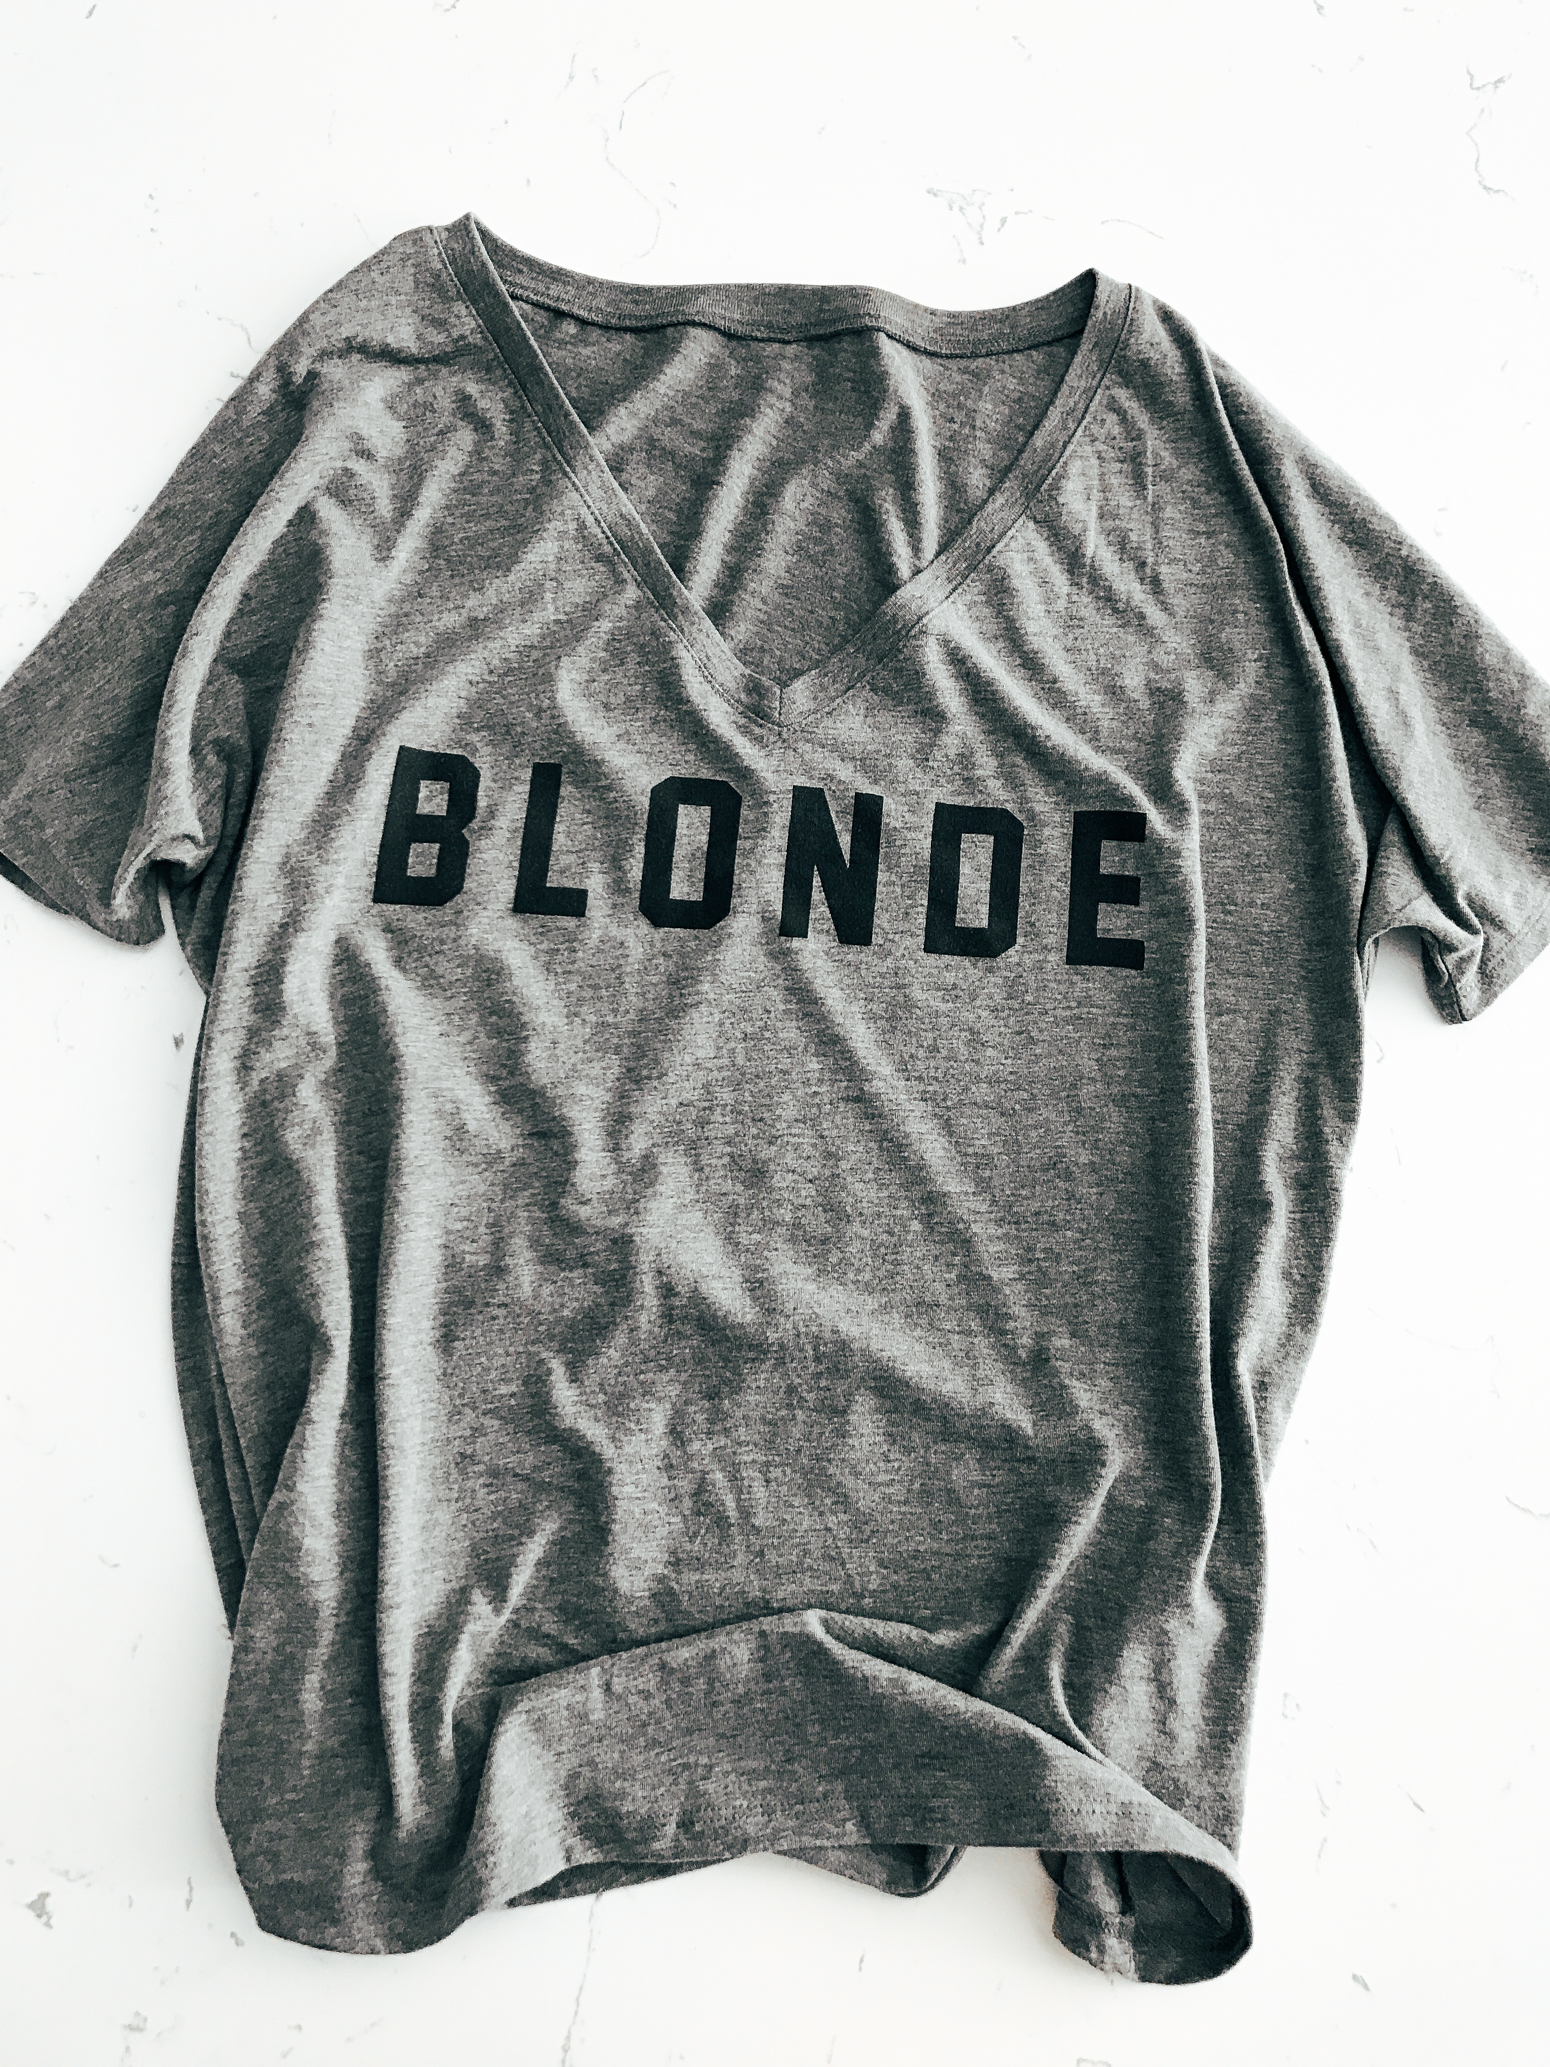 Blondie in the City | Blonde, Brunette, & Ginger BFF Tee's | Cute Girly Tee